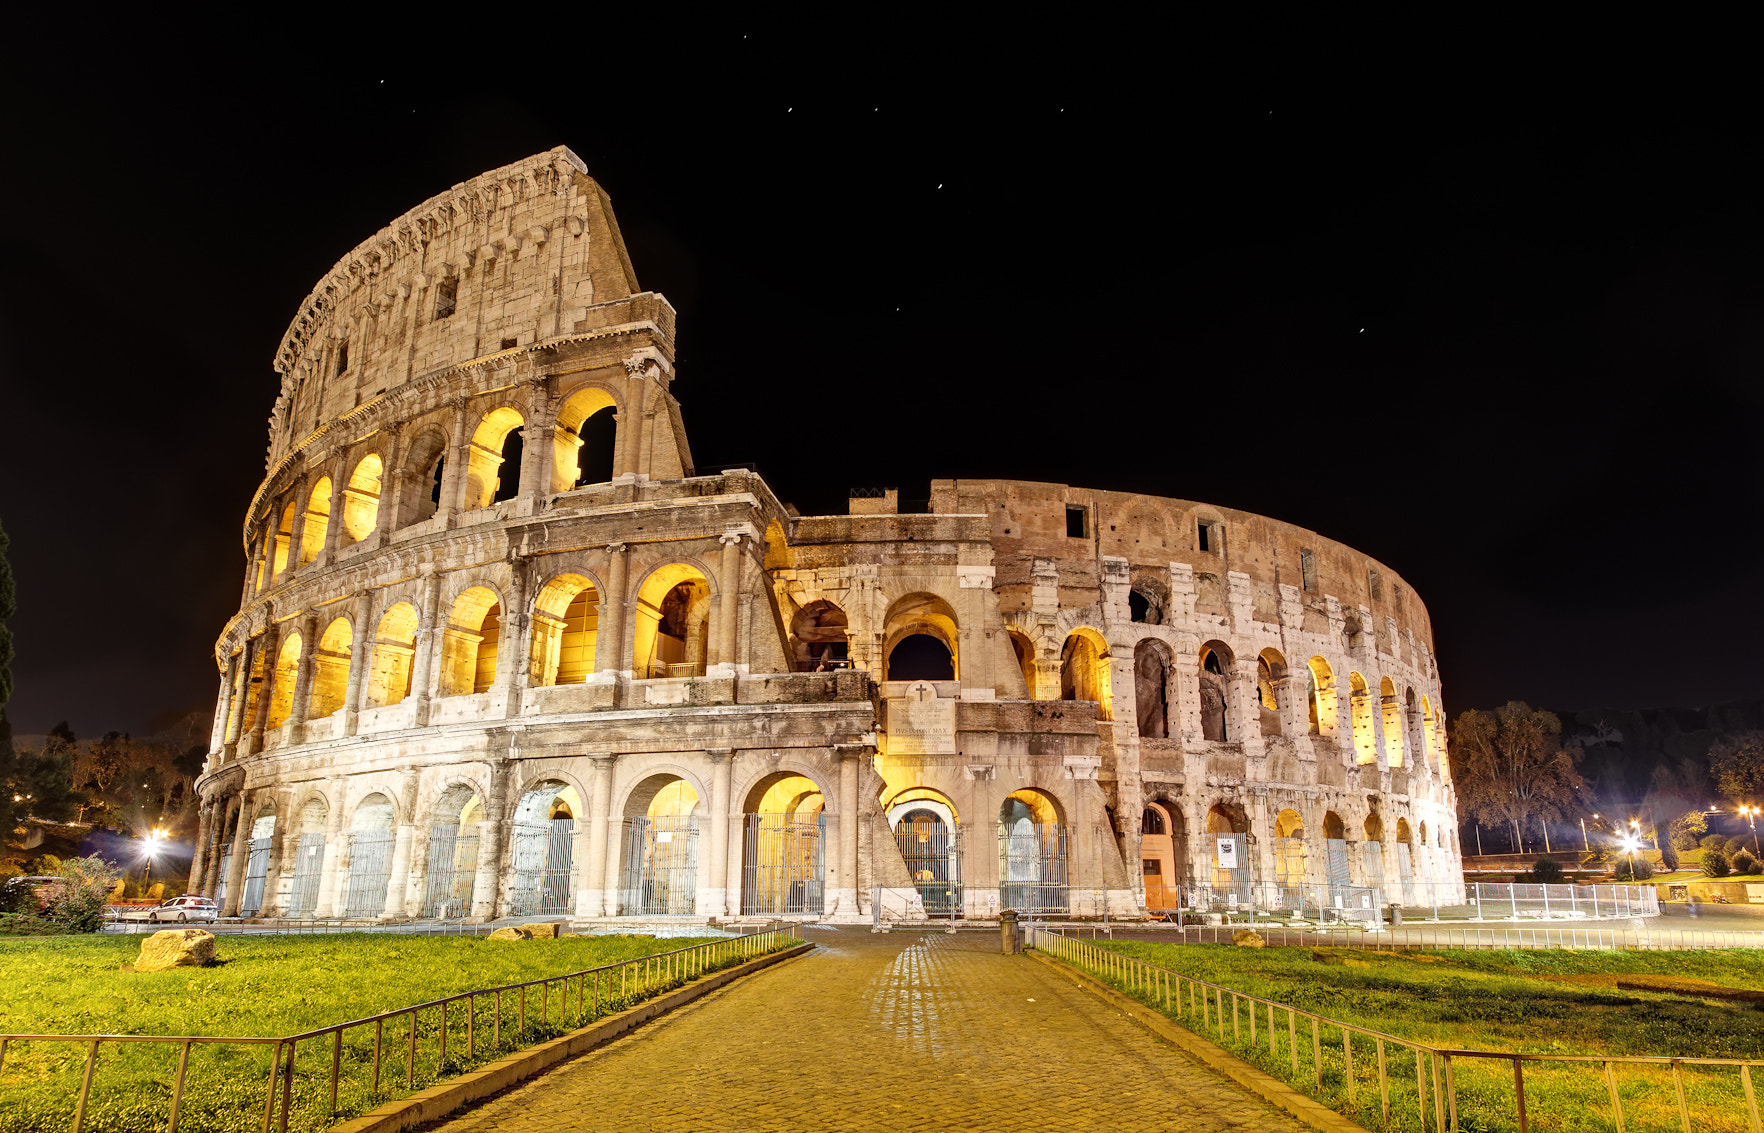 Photograph Colosseo by Stefano Di Chiara on 500px